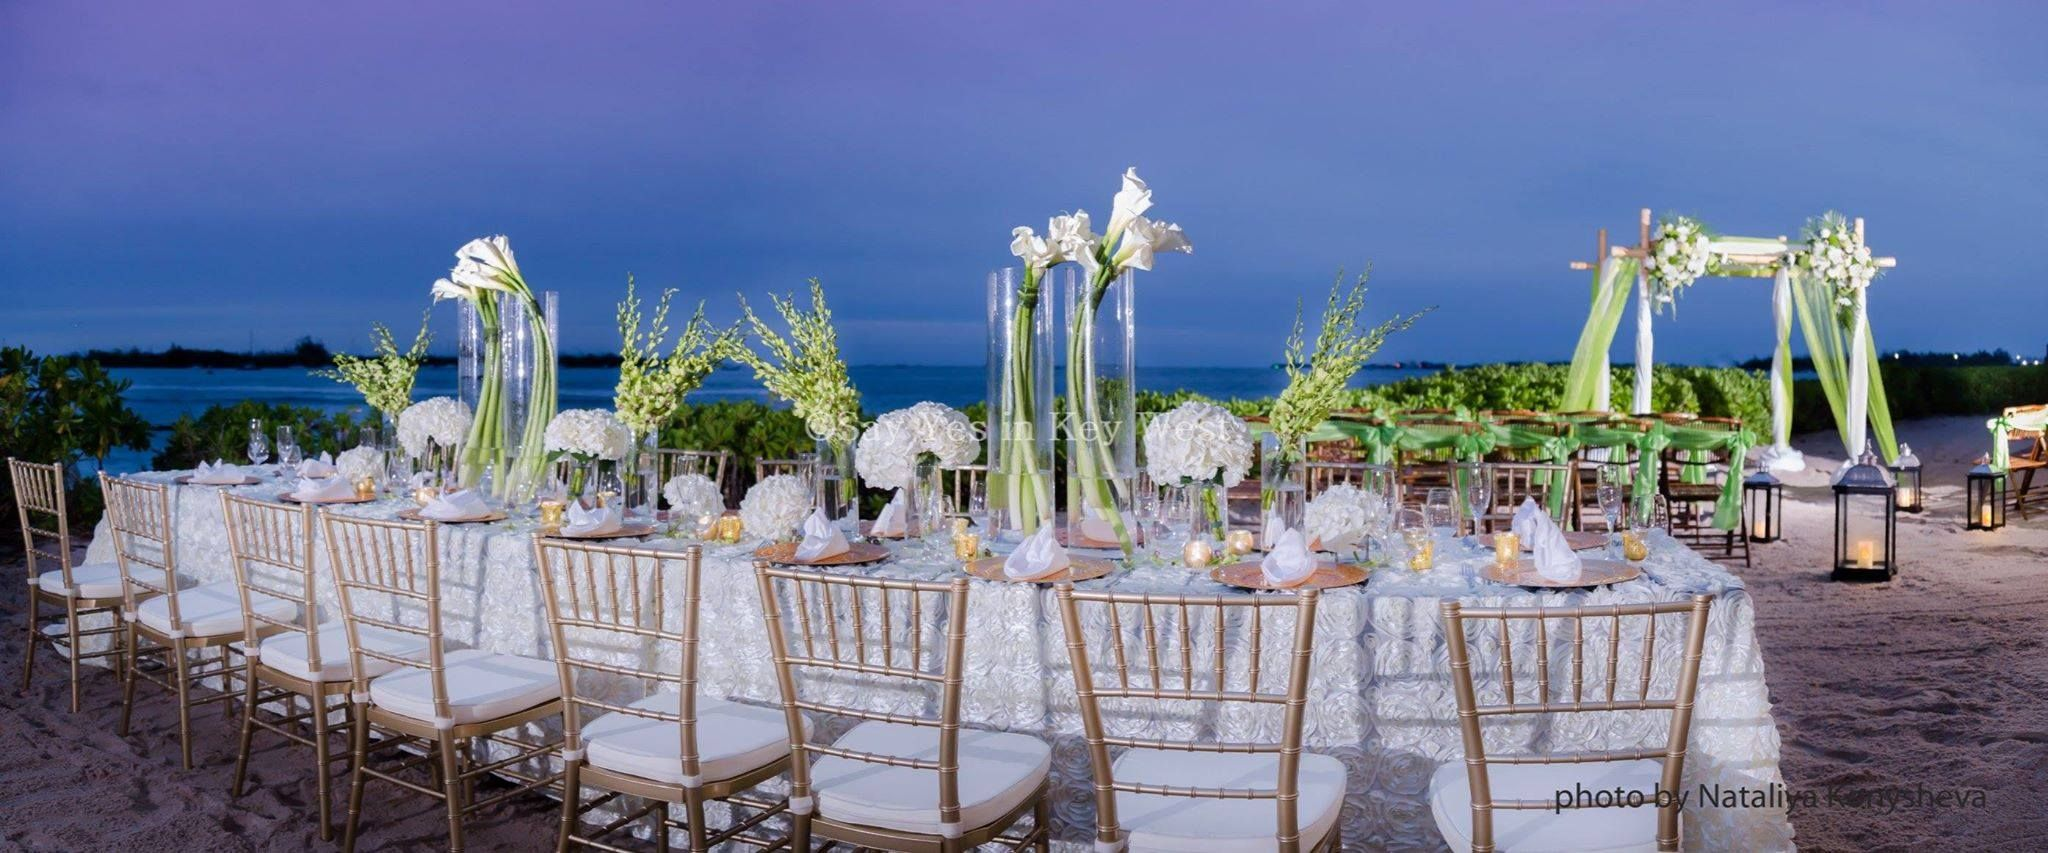 Wedding Ceremony And Reception On The Beach Terrace In Key West